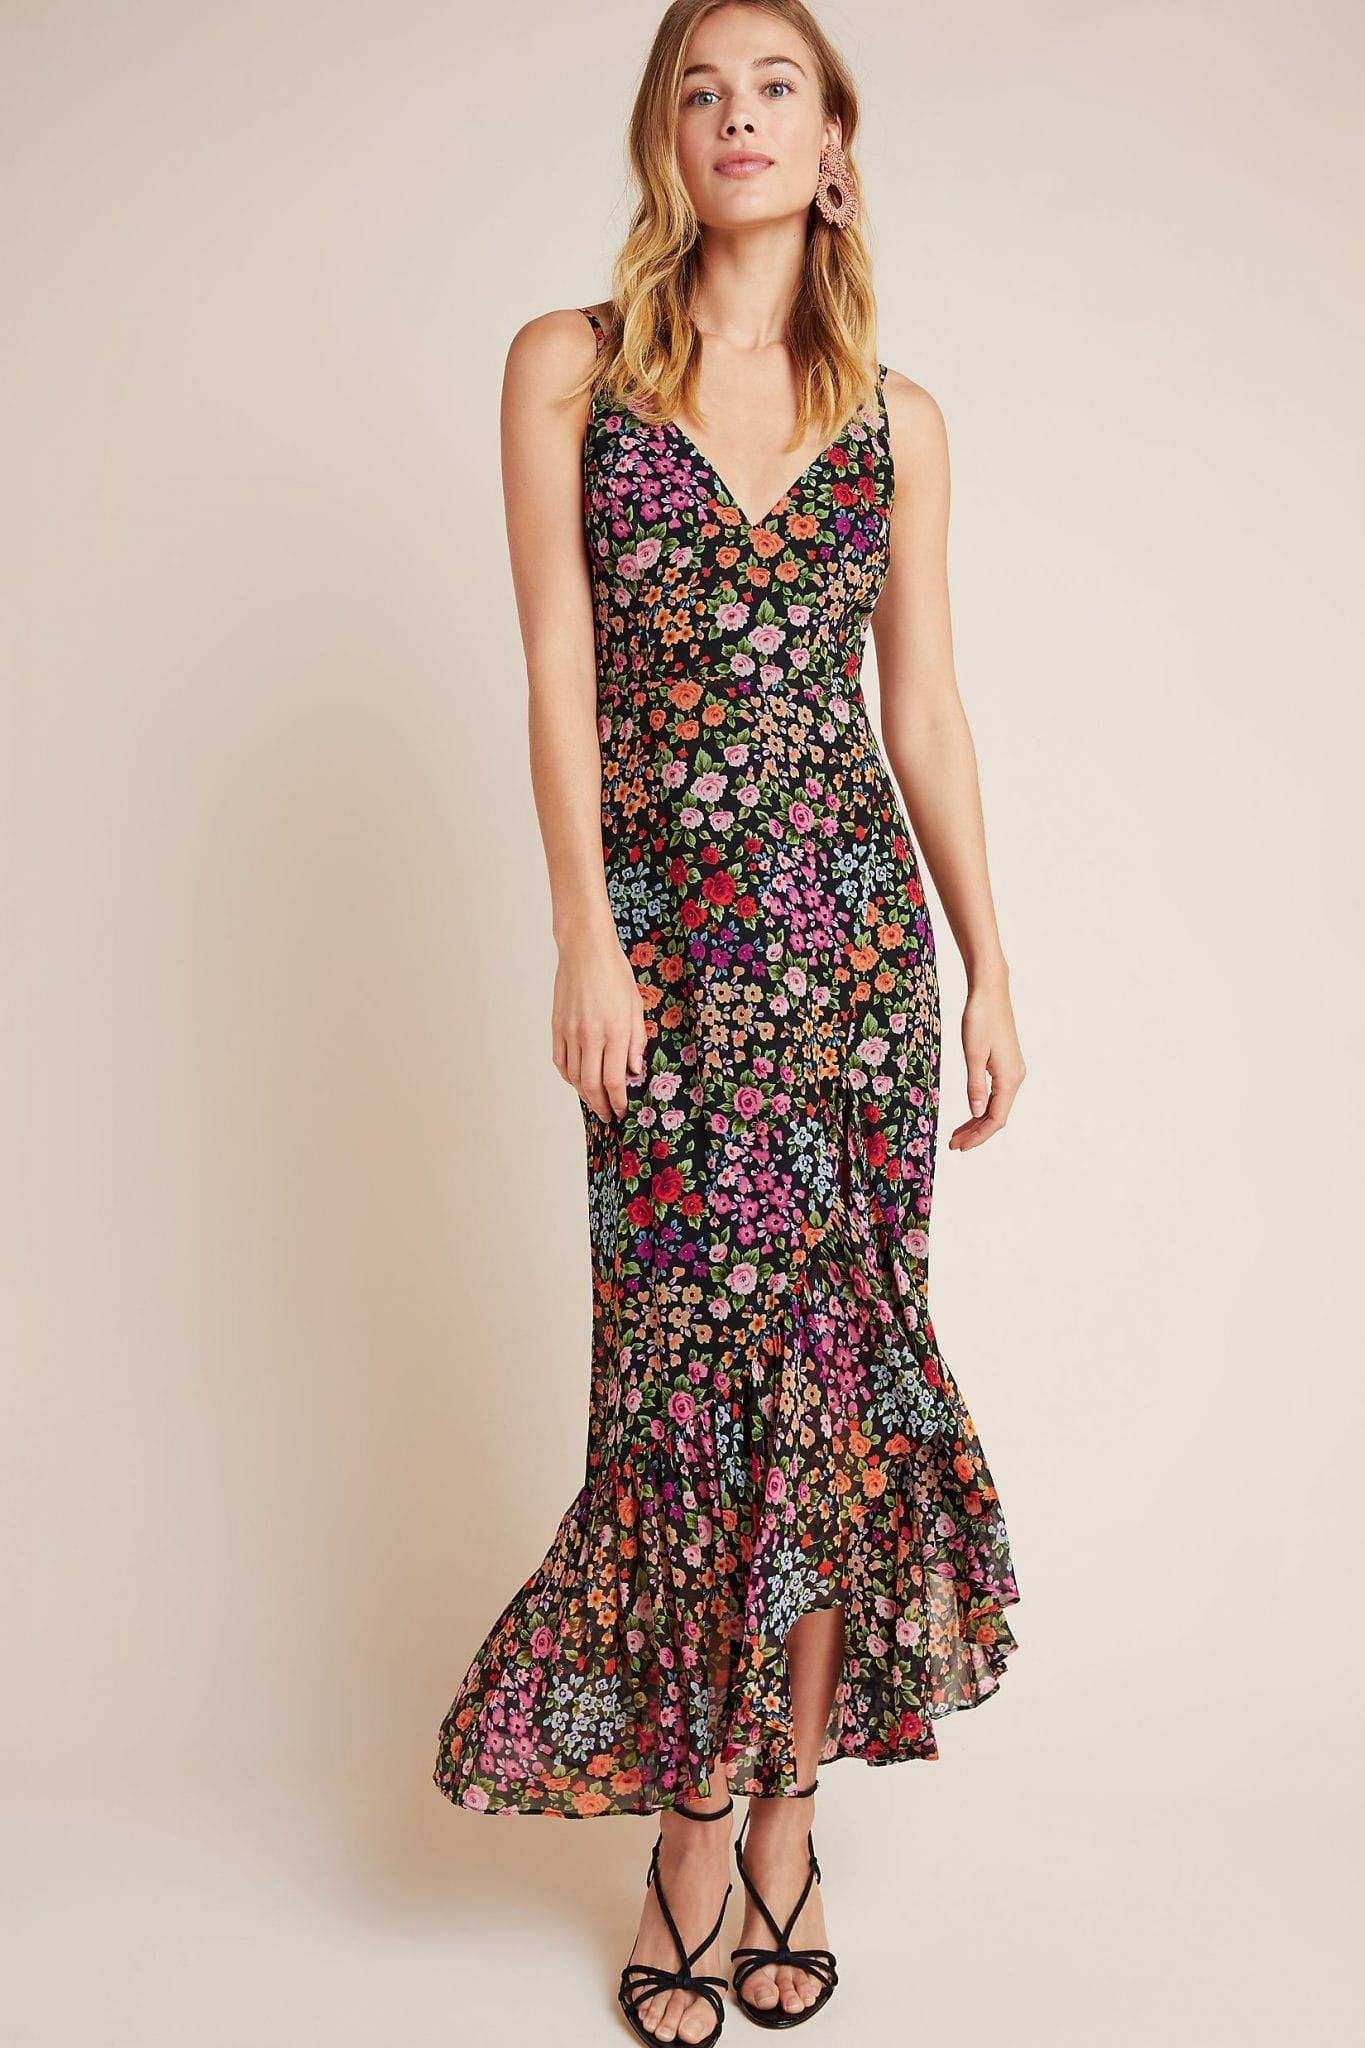 YUMI KIM Roxie Ruffled Maxi Dress